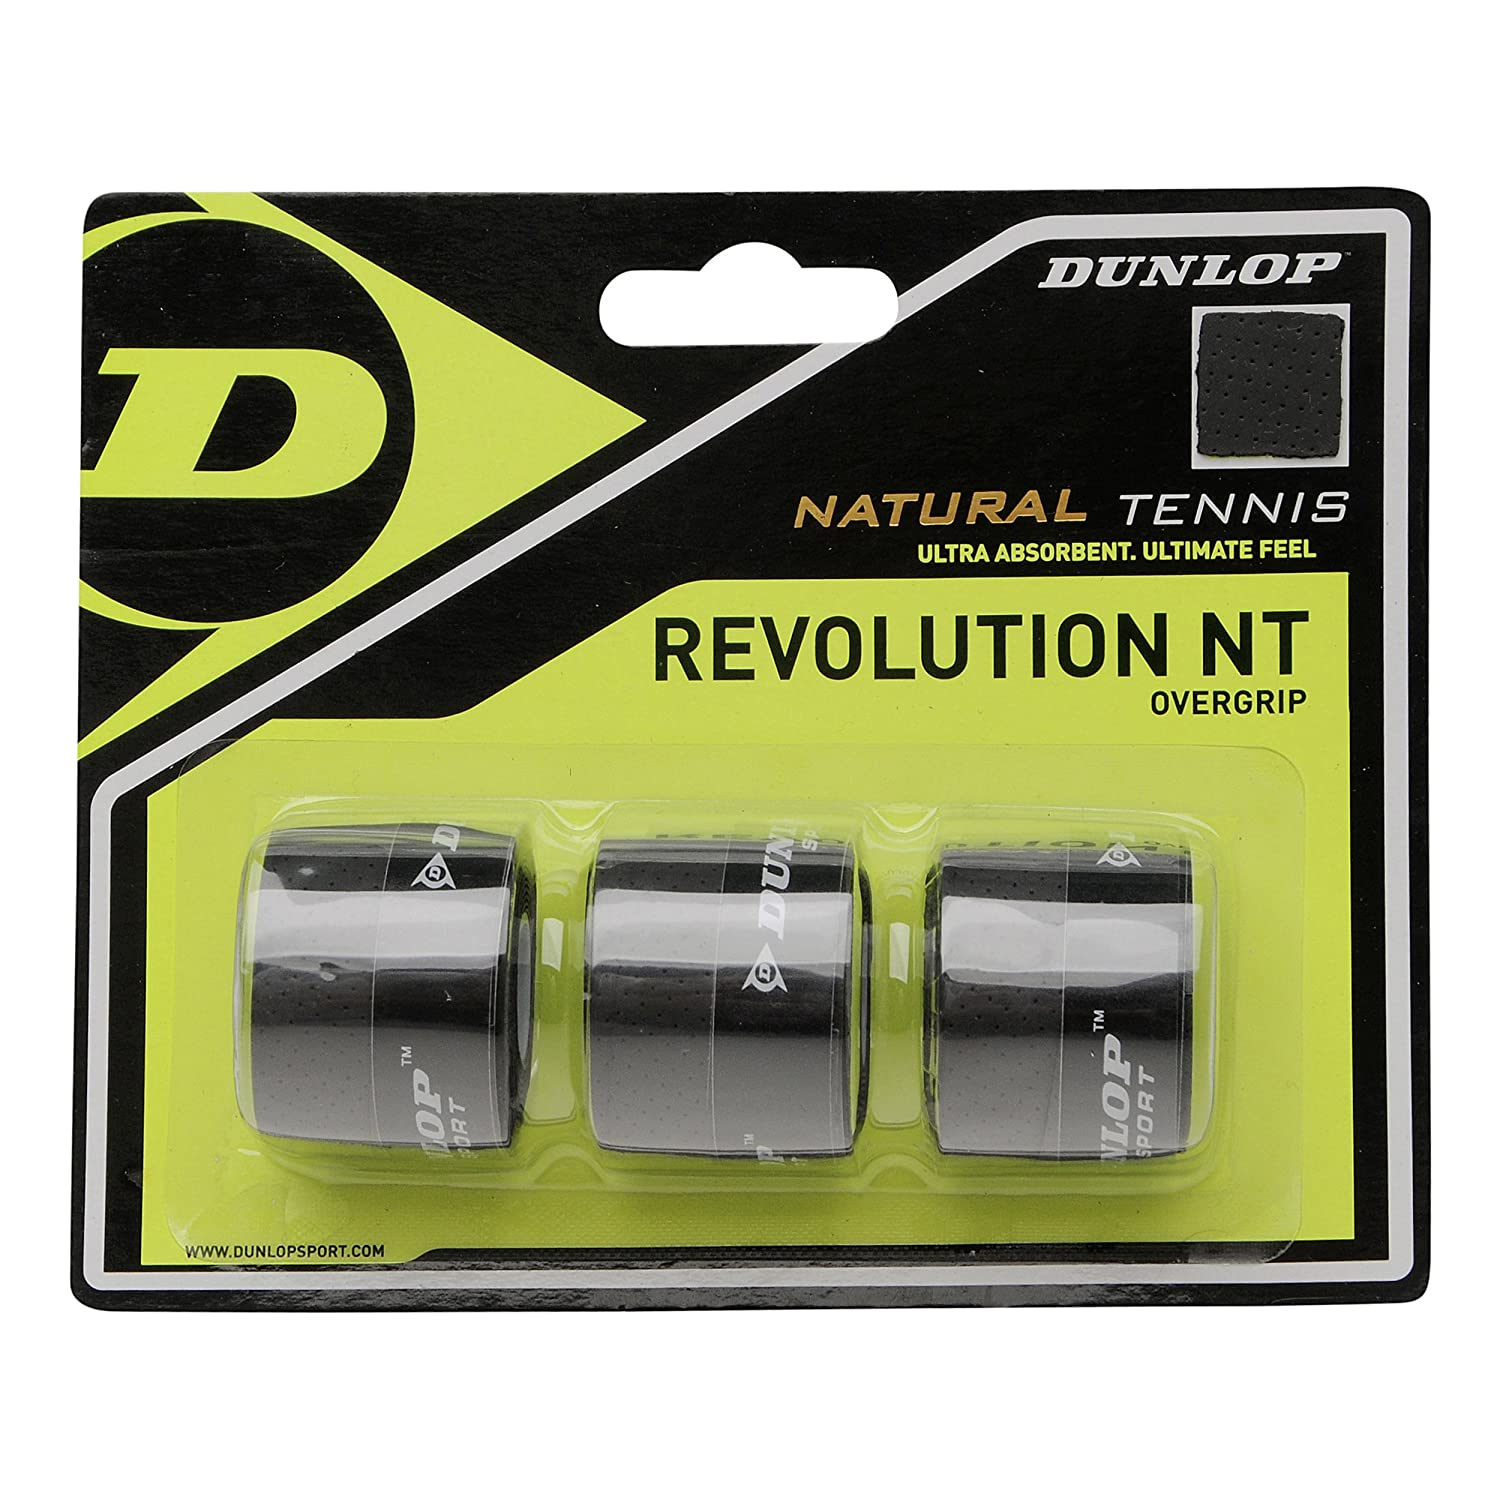 DUNLOP Over Grip Revolution NT 3 Unidades, Negro, One Size, 613238 ...